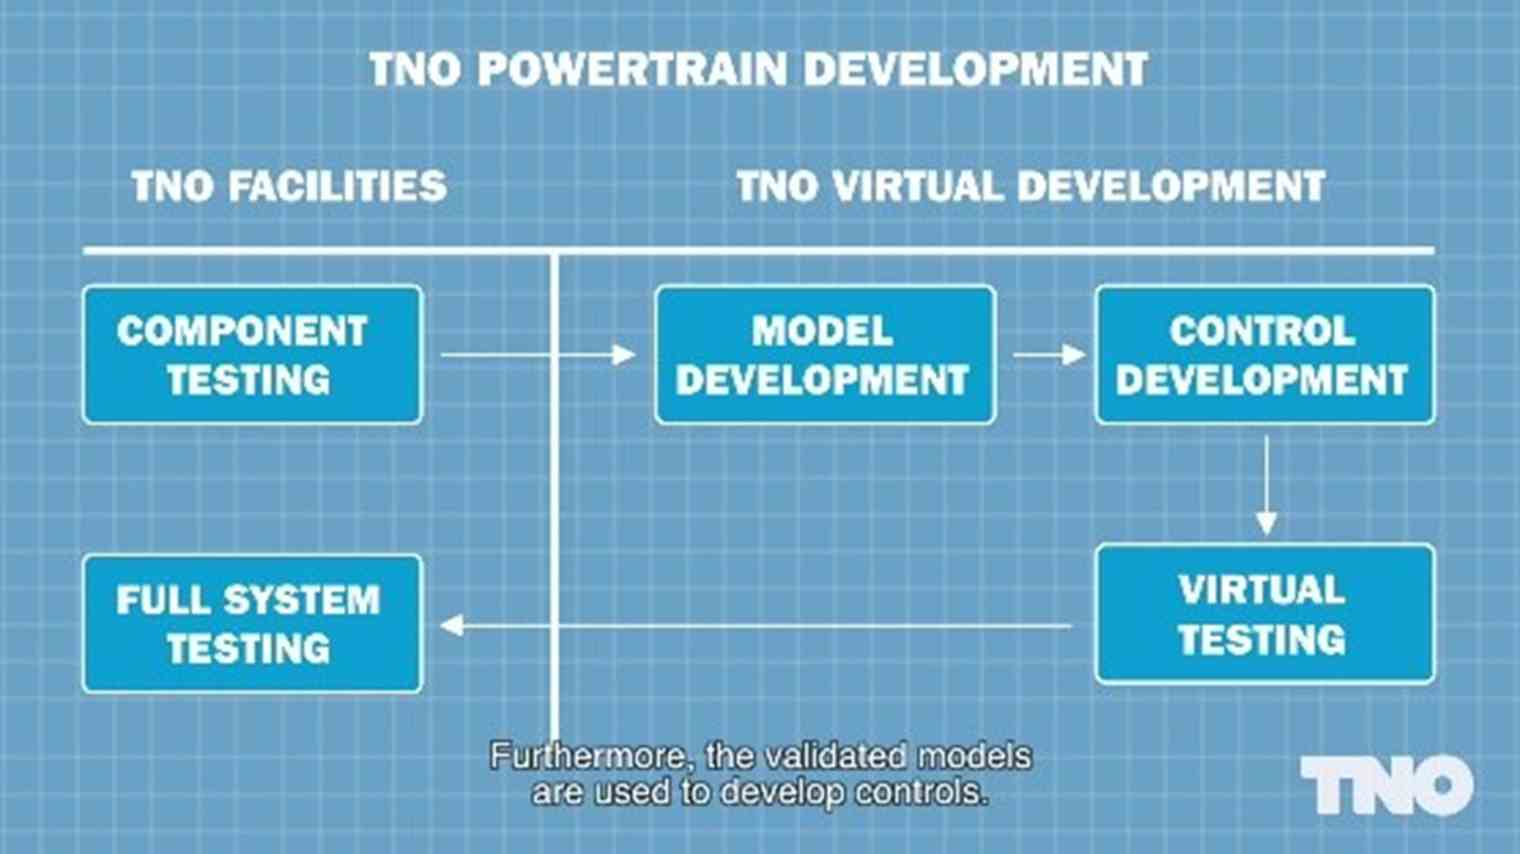 Tno Research On Powertrains Automations Gt Motor Control Circuits Simple Ac Speed Our Solutions Can Be Implemented Directly Your Programmable Controller To Maximize Performance Online In Real World Operating Conditions